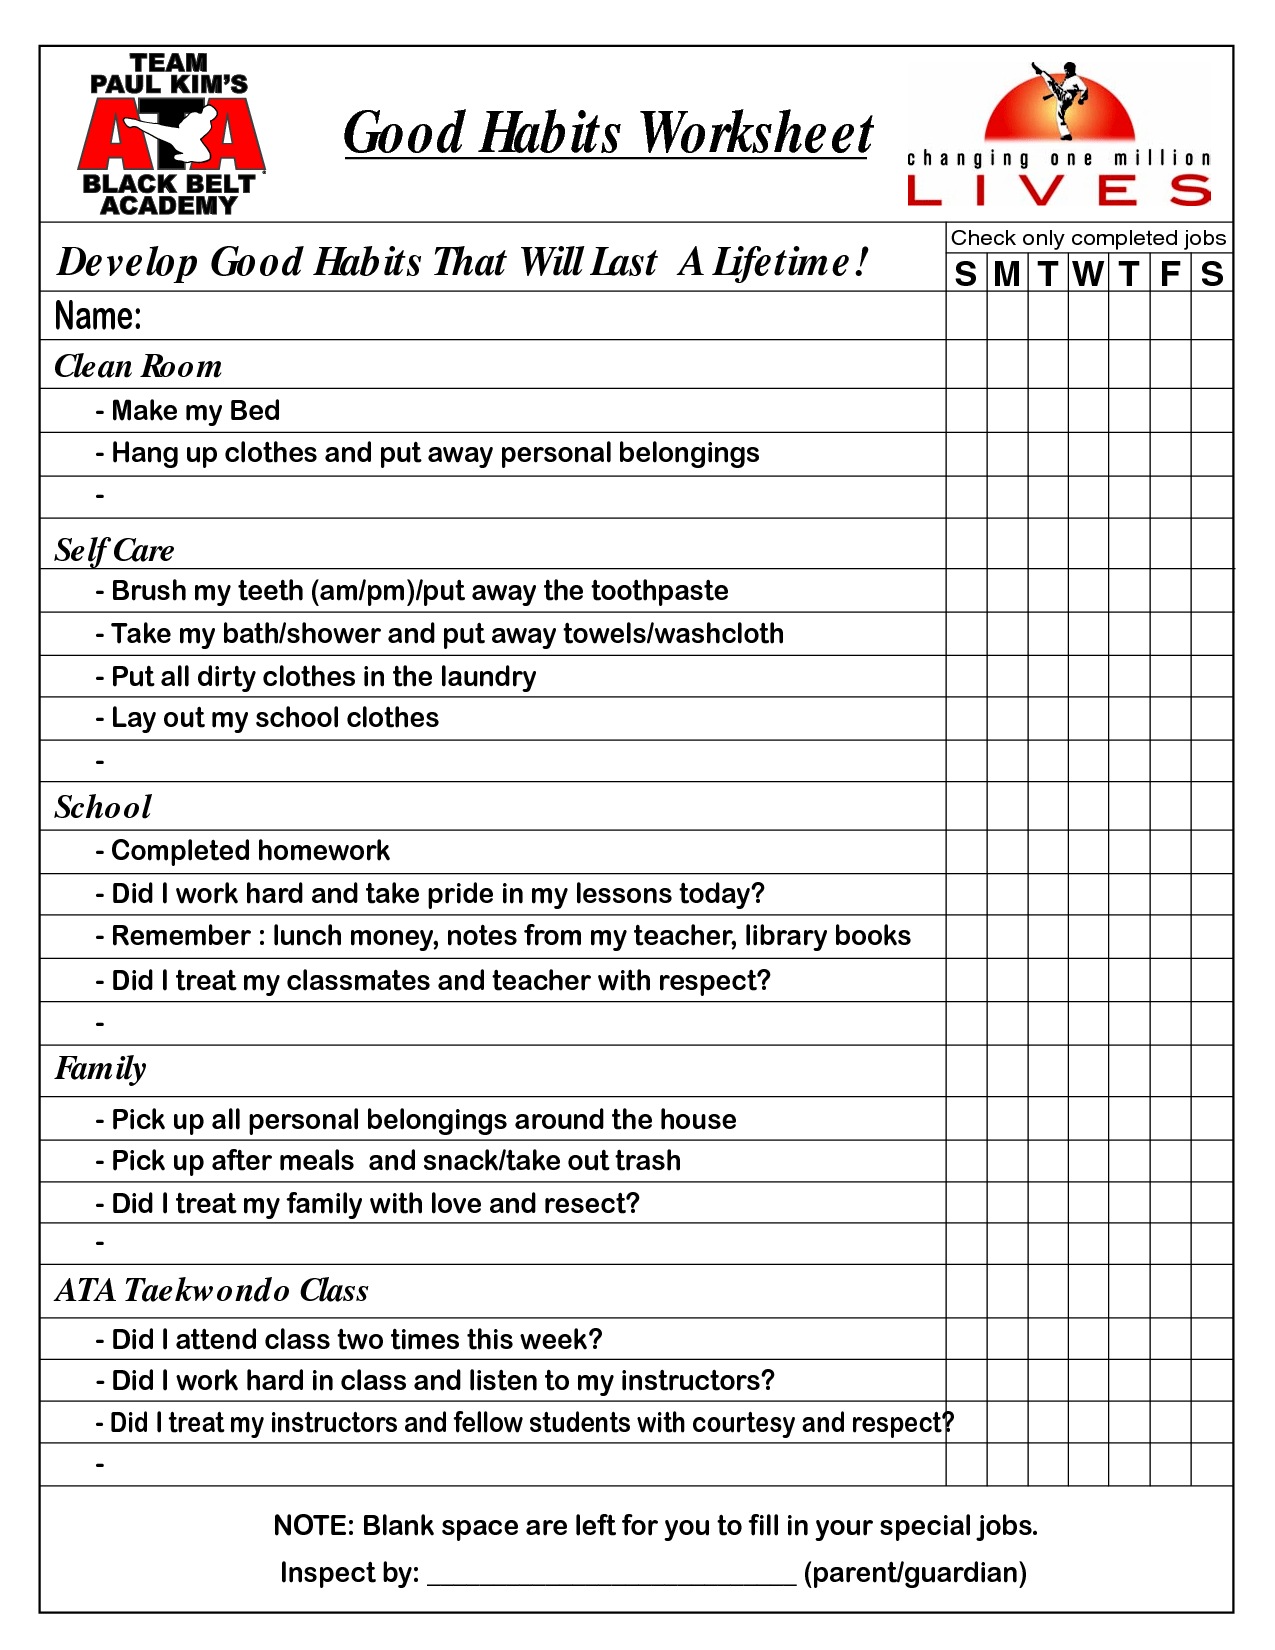 16 Best Images Of Healthy Eating Worksheets For Teens